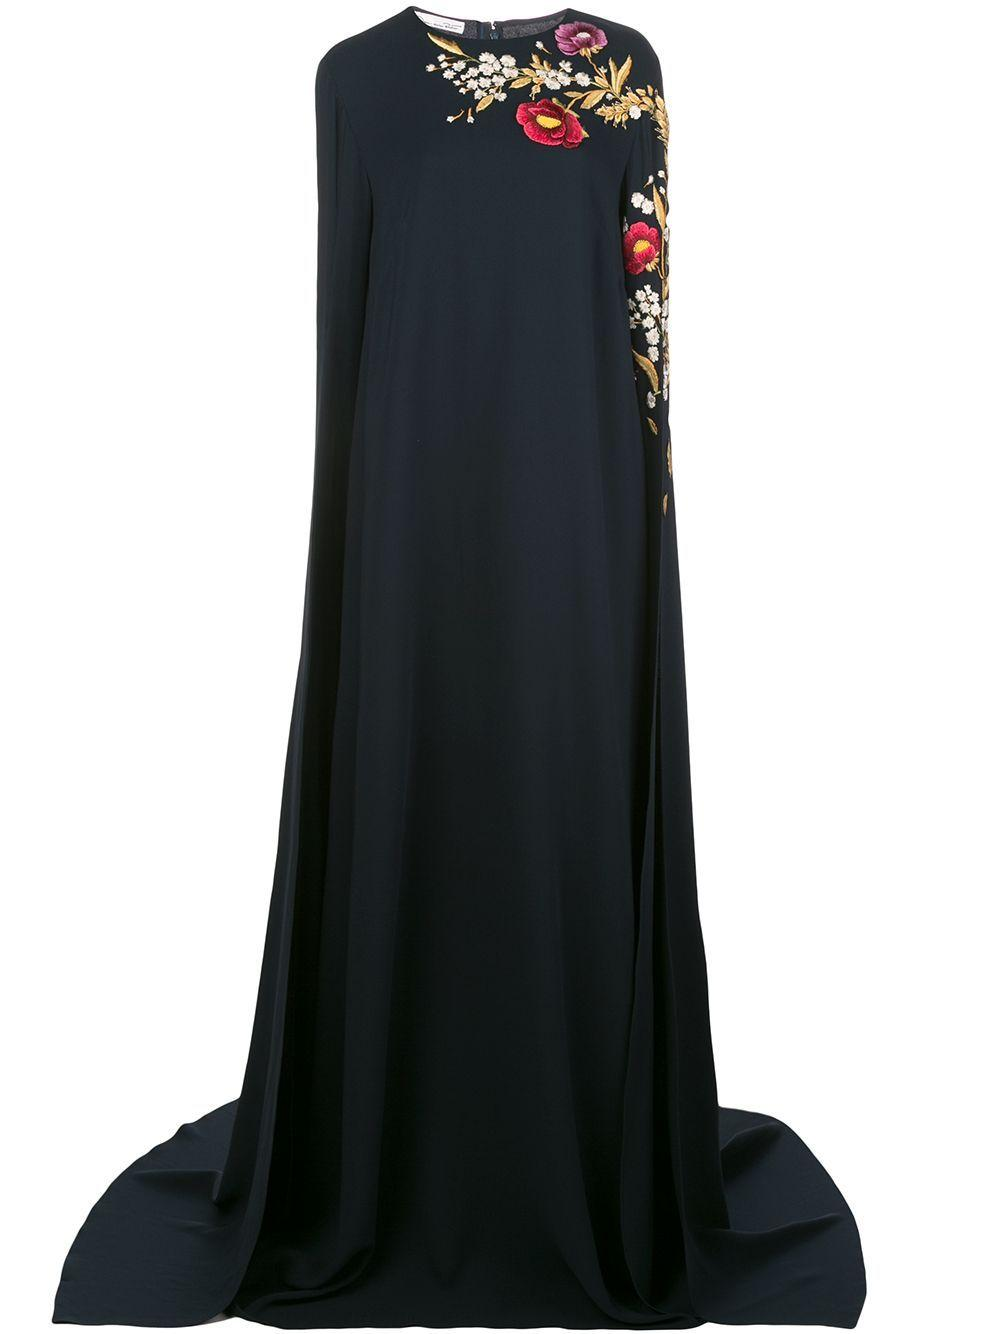 Caftan With Floral Embroidery Item # 20SE927HSG